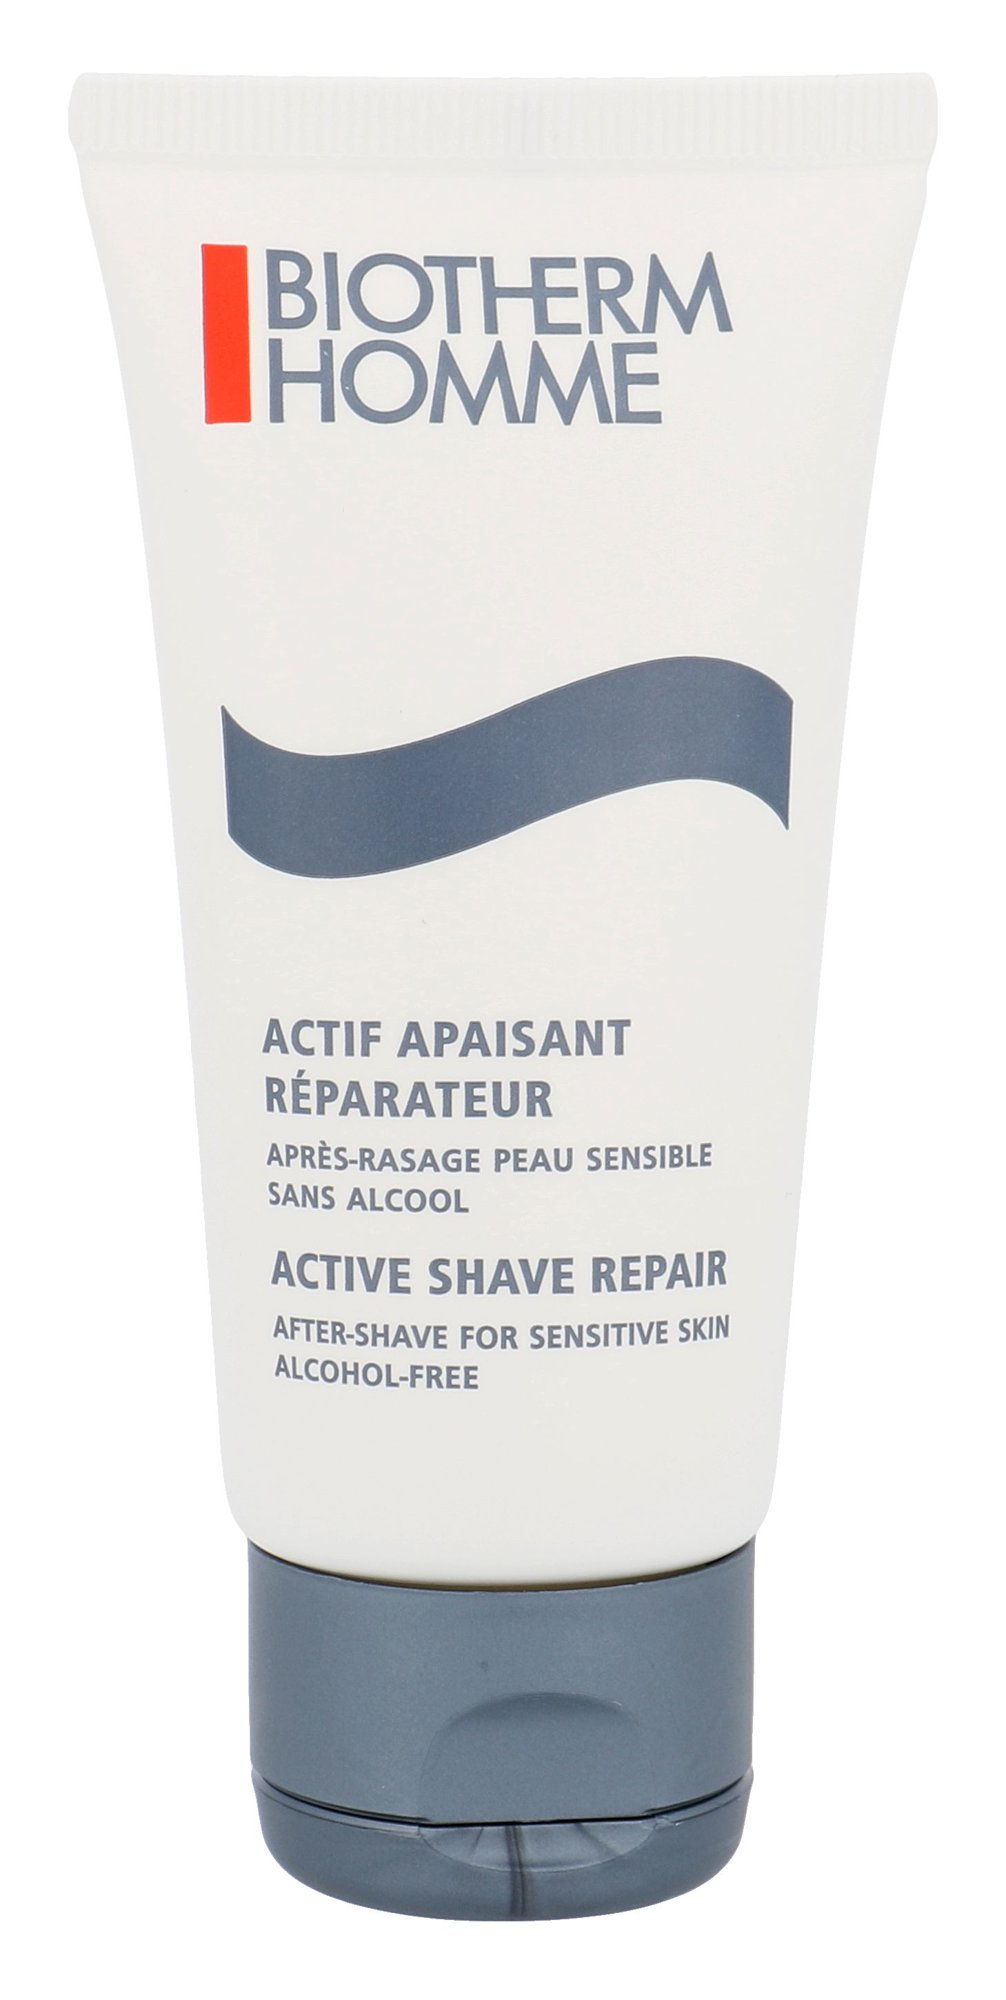 Biotherm Homme Active Shave Repair Cosmetic 50ml